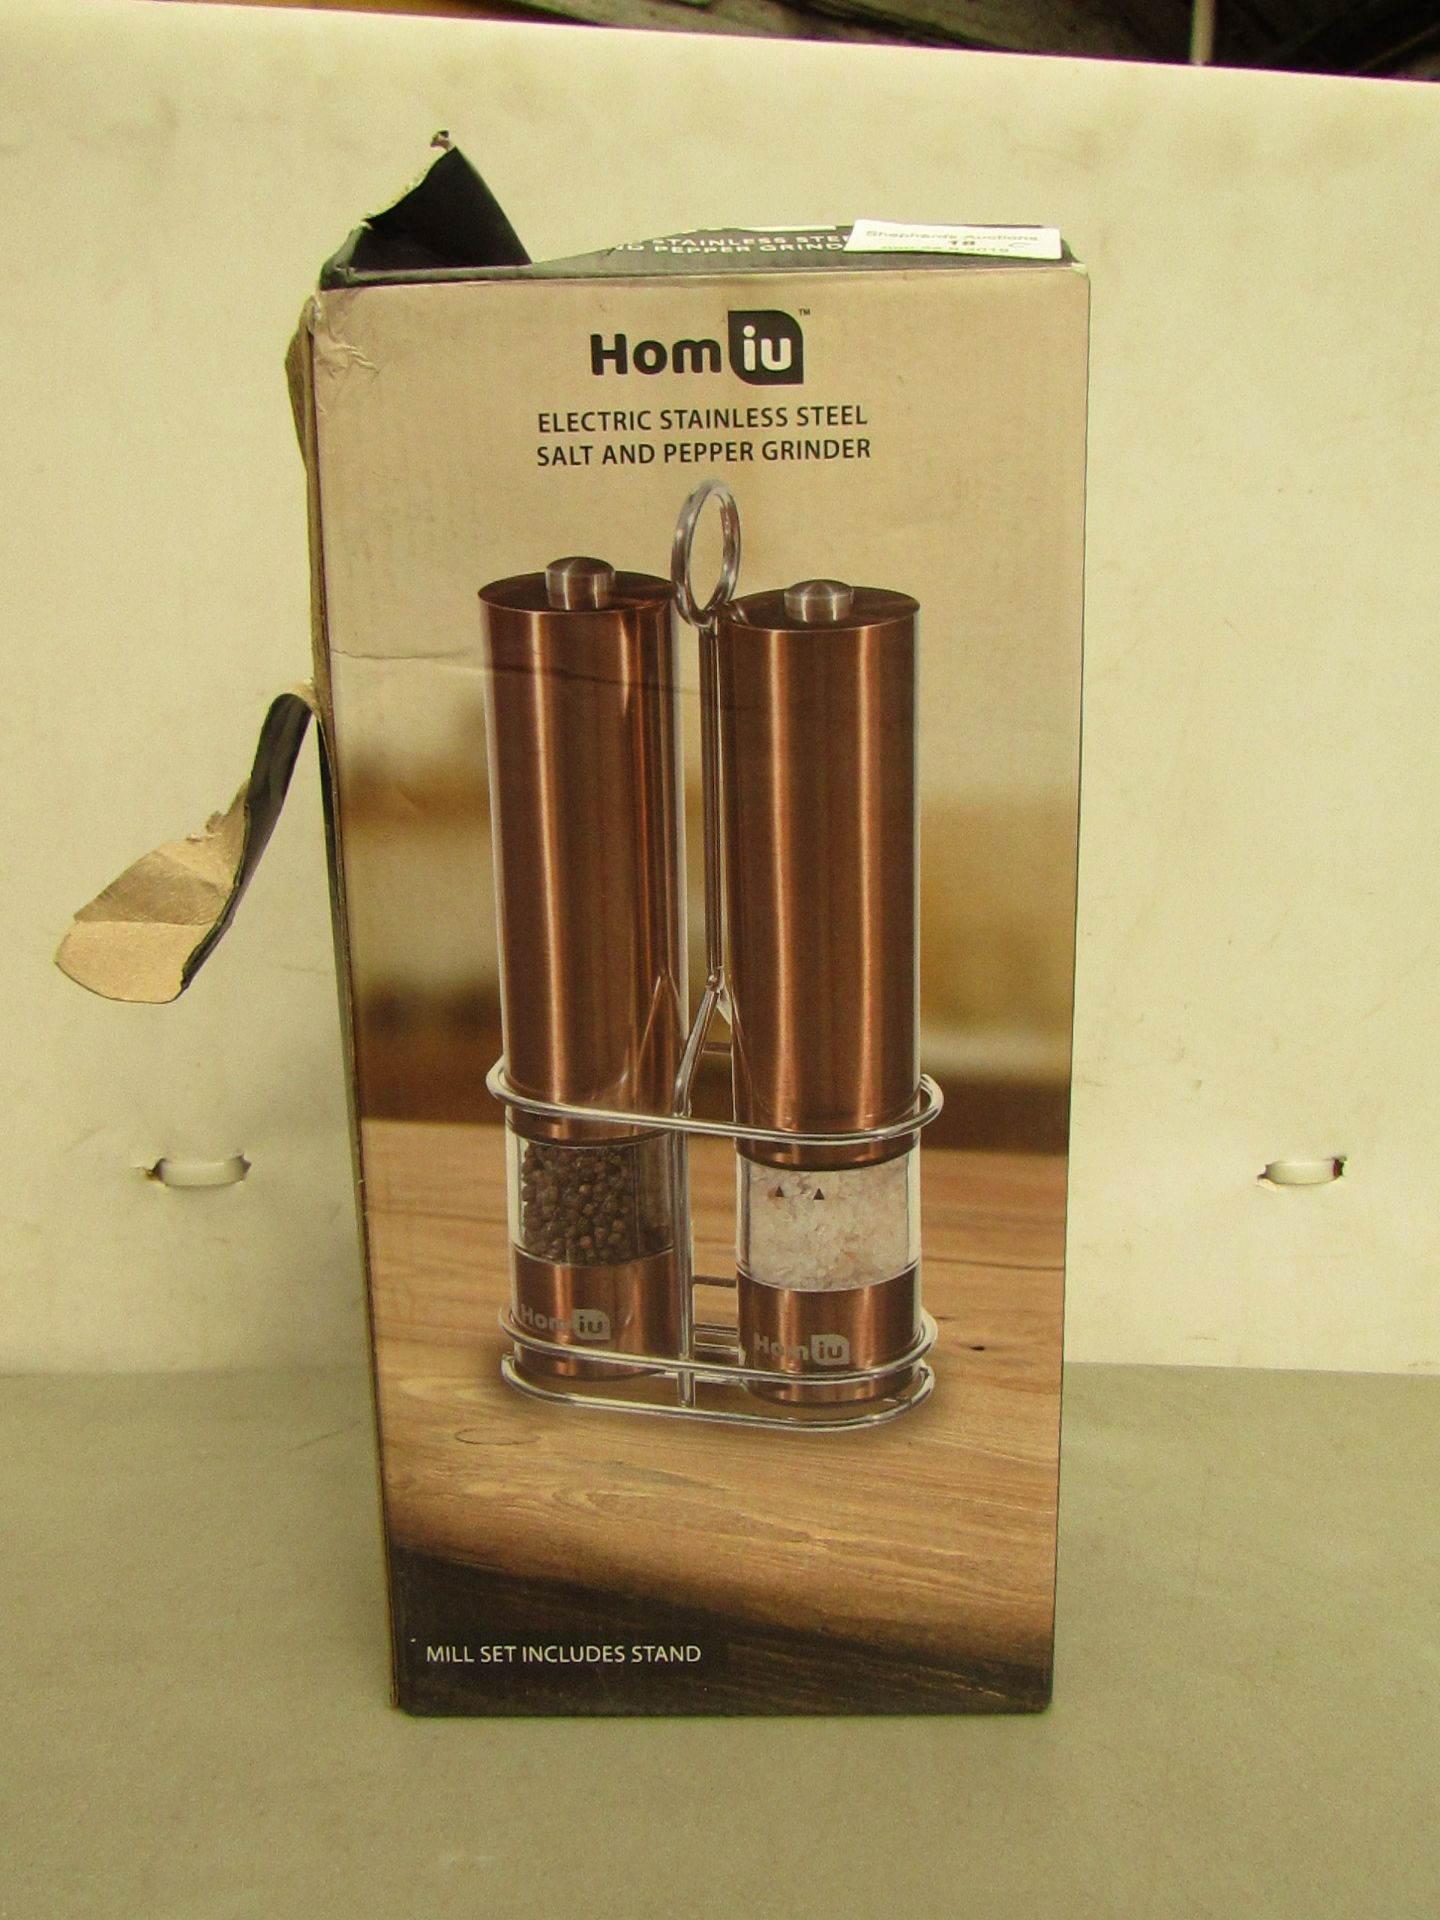 Lotto 18 - Homiu Electric Stainless Steel Salt and Pepper Grinder set in Copper . Boxed